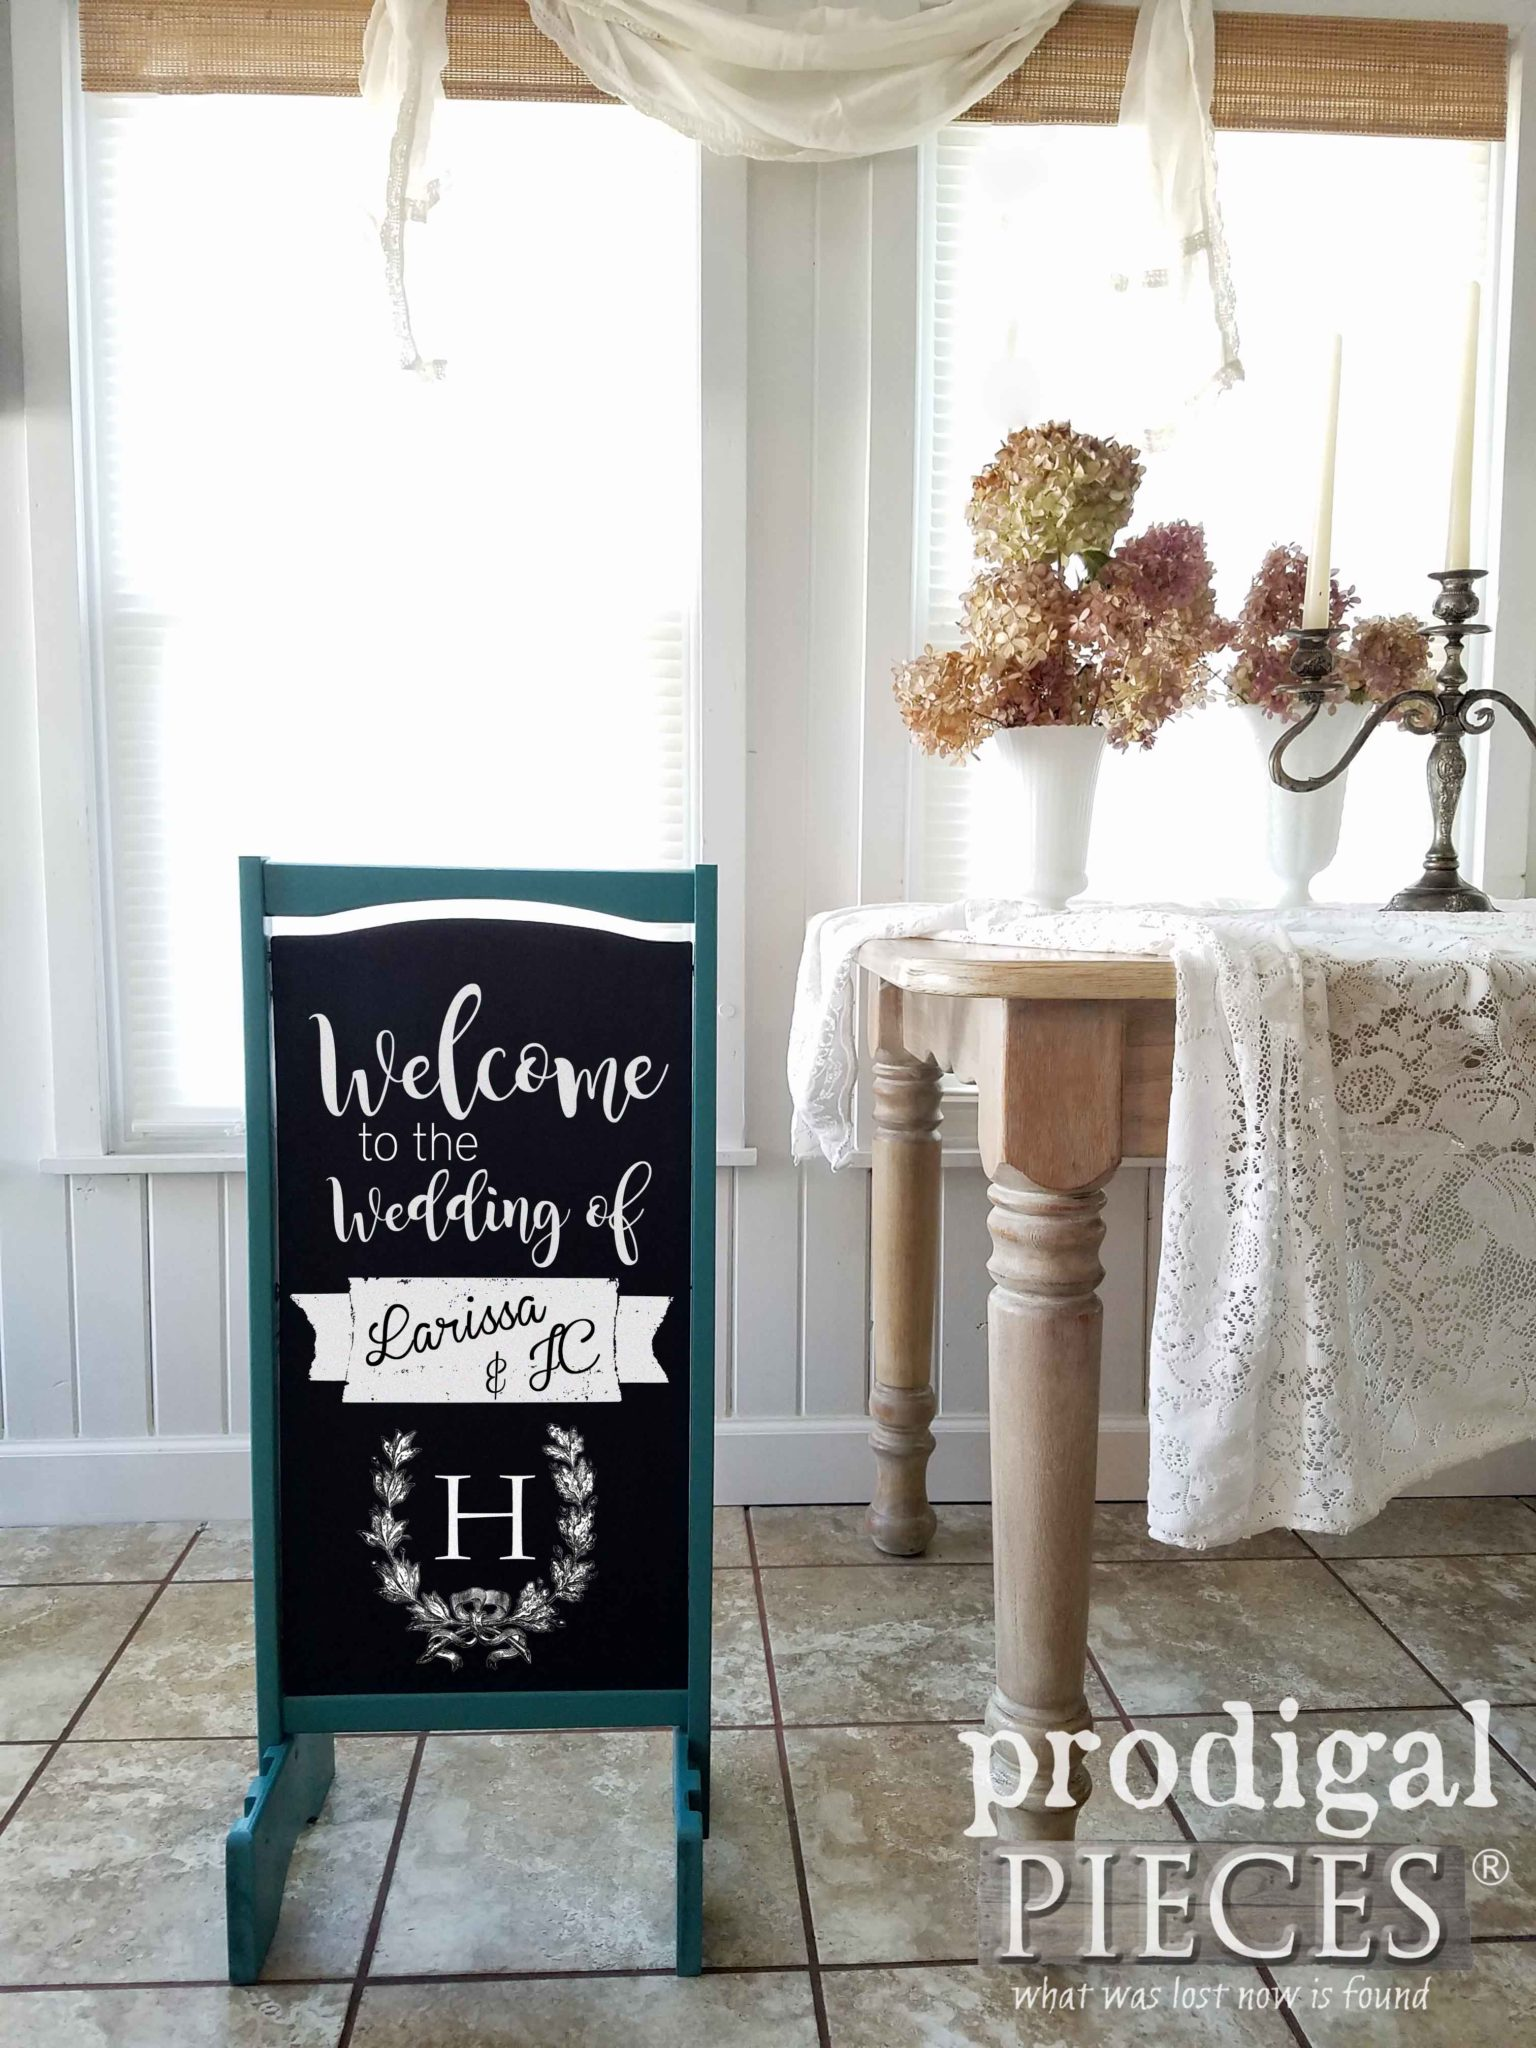 DIY Wedding Chalkboard Sign from Repurposed Items by Larissa of Prodigal Pieces   prodigalpieces.com